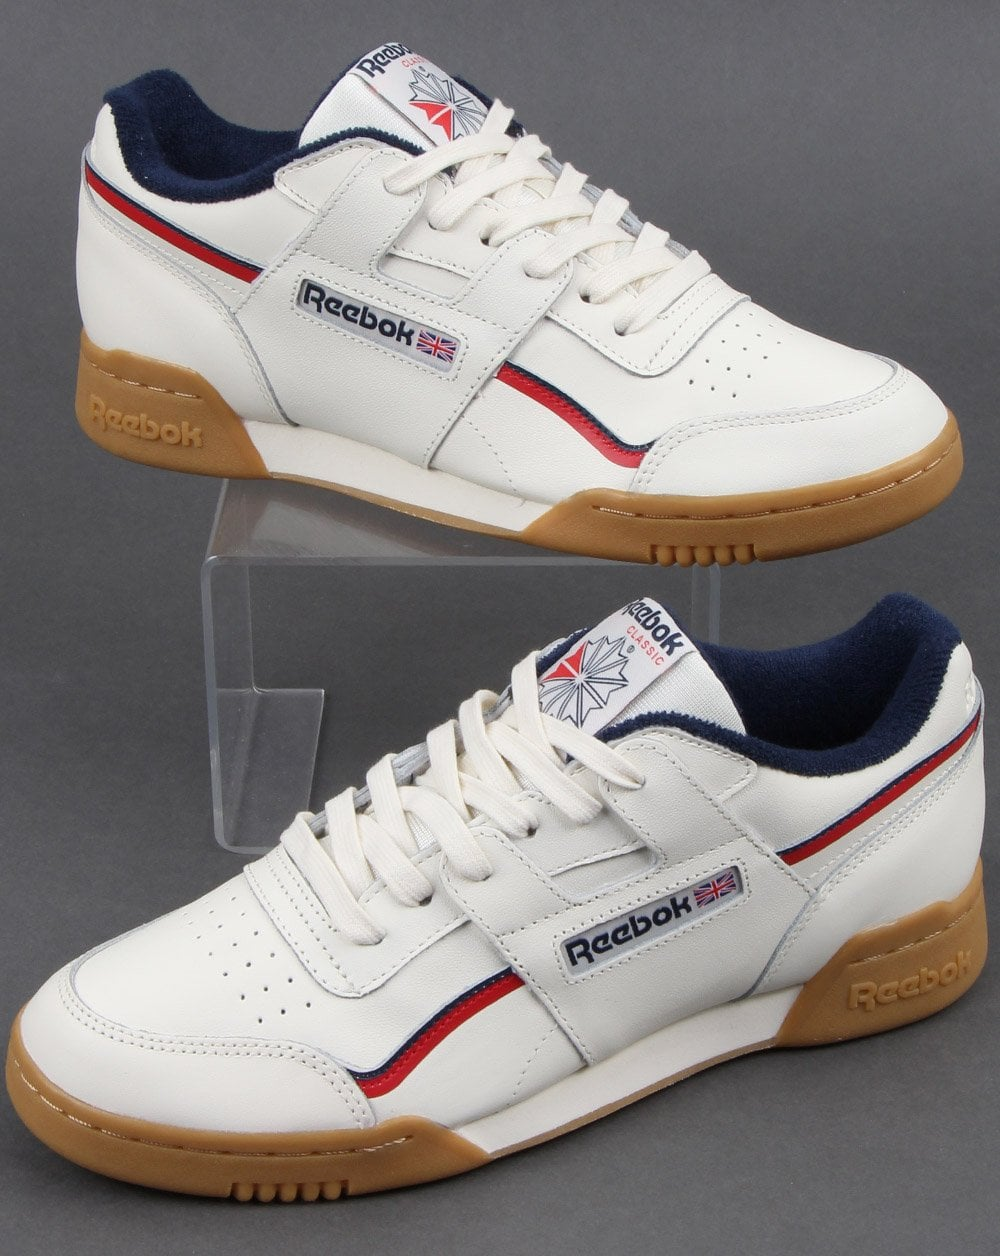 158075baabfe2 Reebok Reebok Workout Plus Classic Trainers White navy red